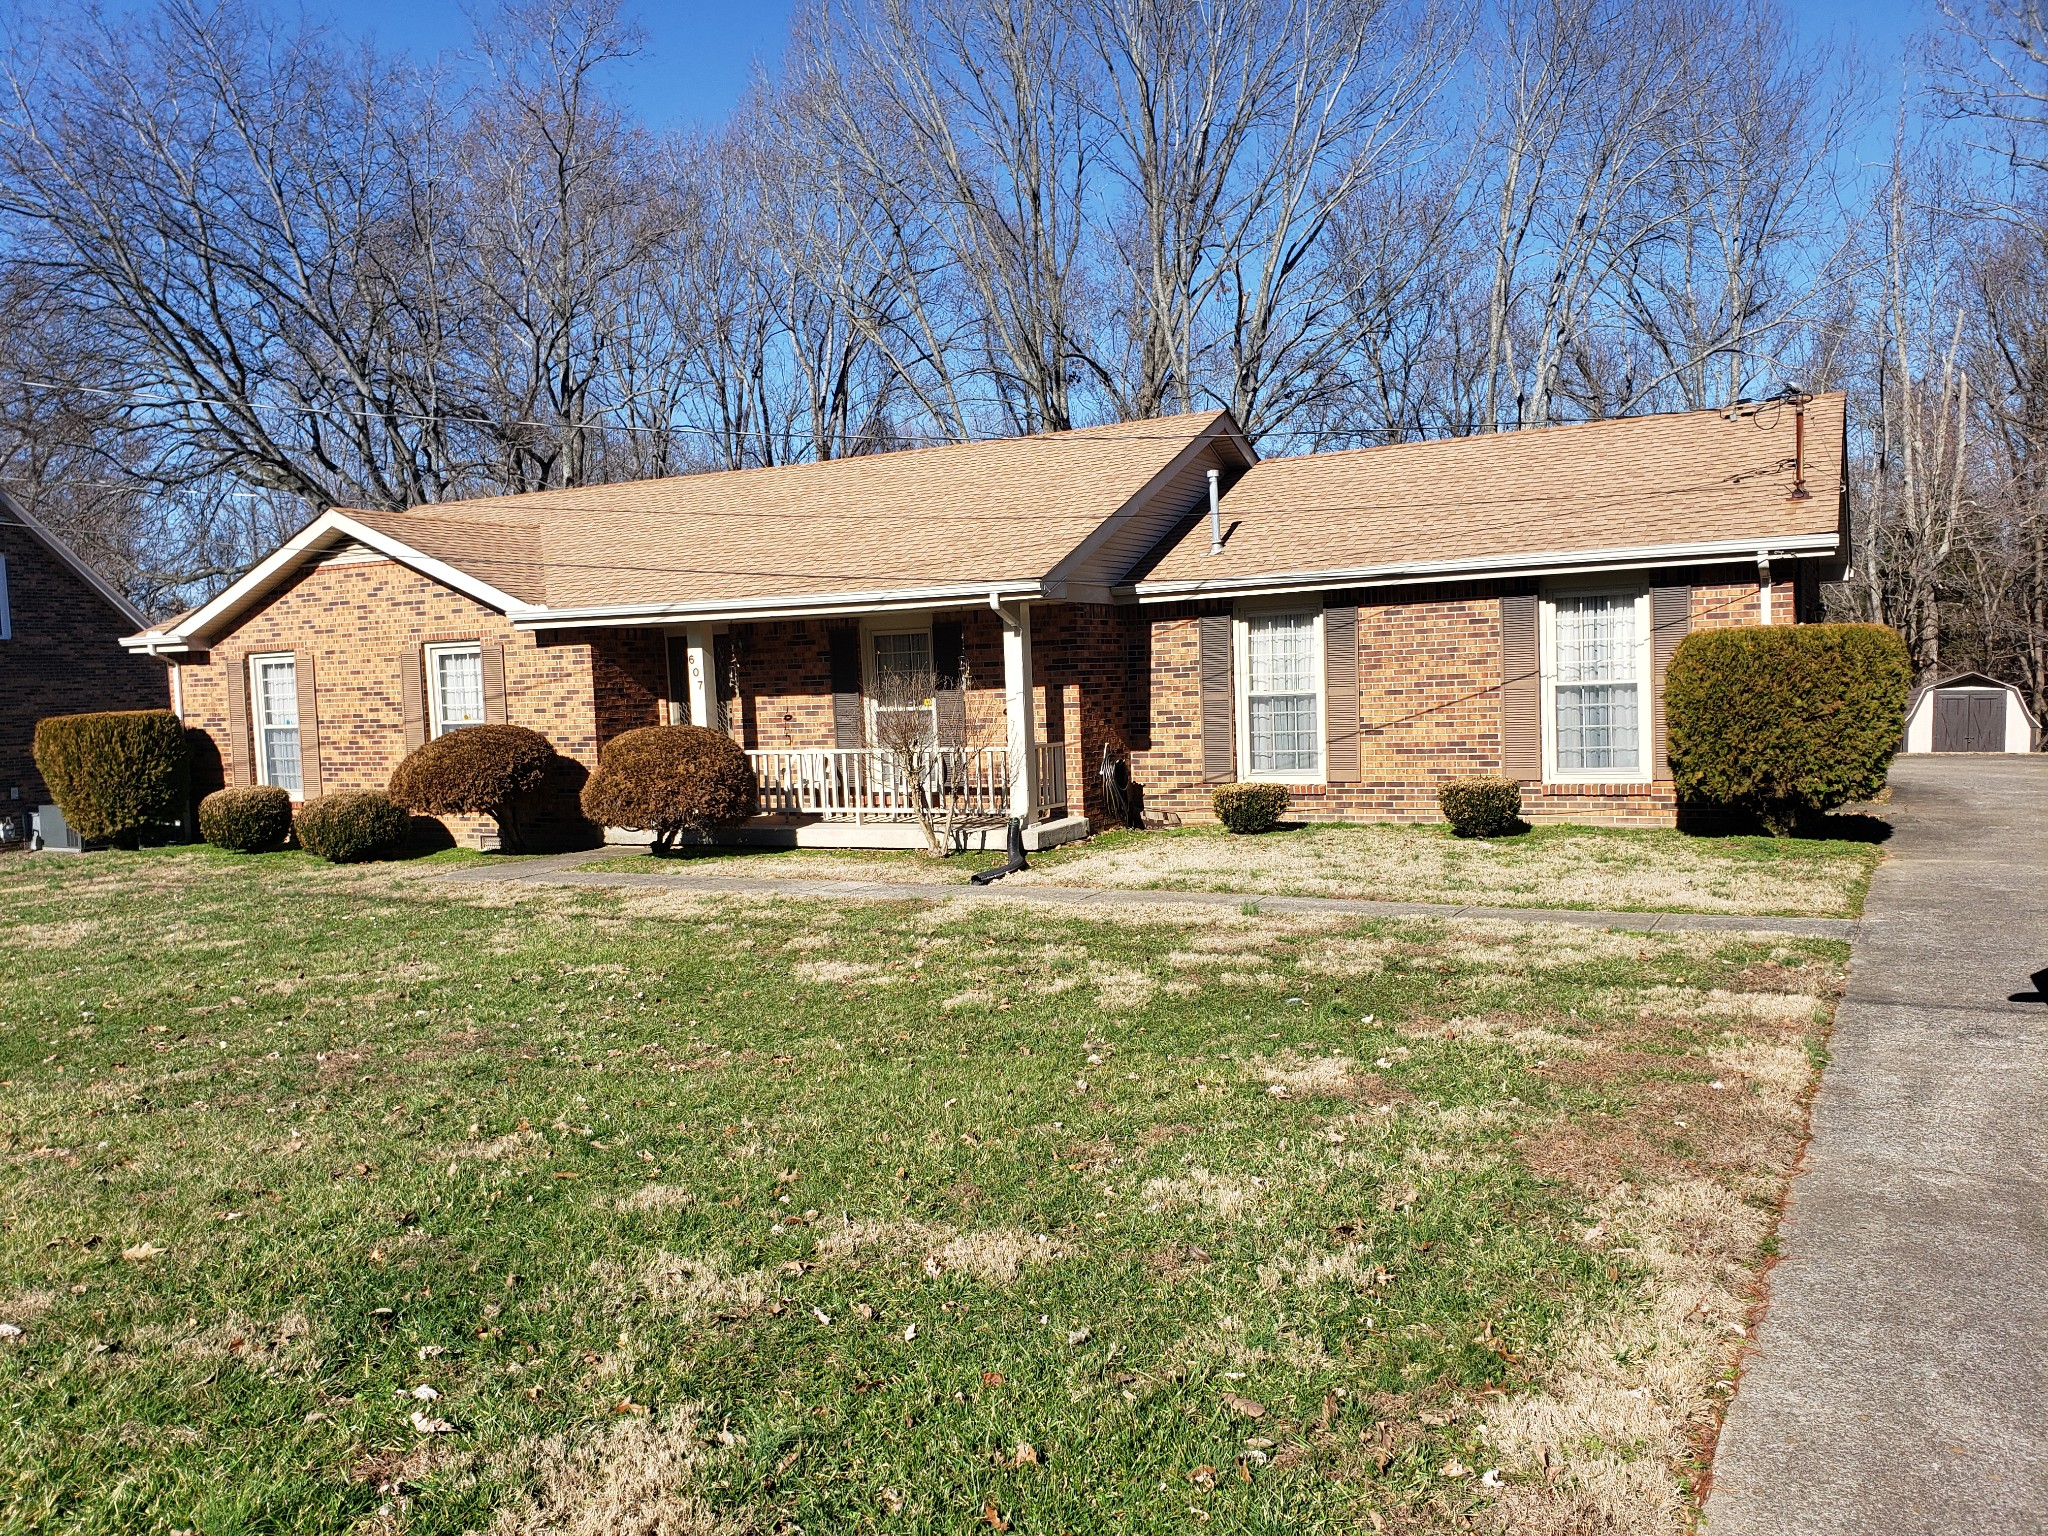 607 Fox Ridge Dr, Clarksville, TN 37042 - Clarksville, TN real estate listing